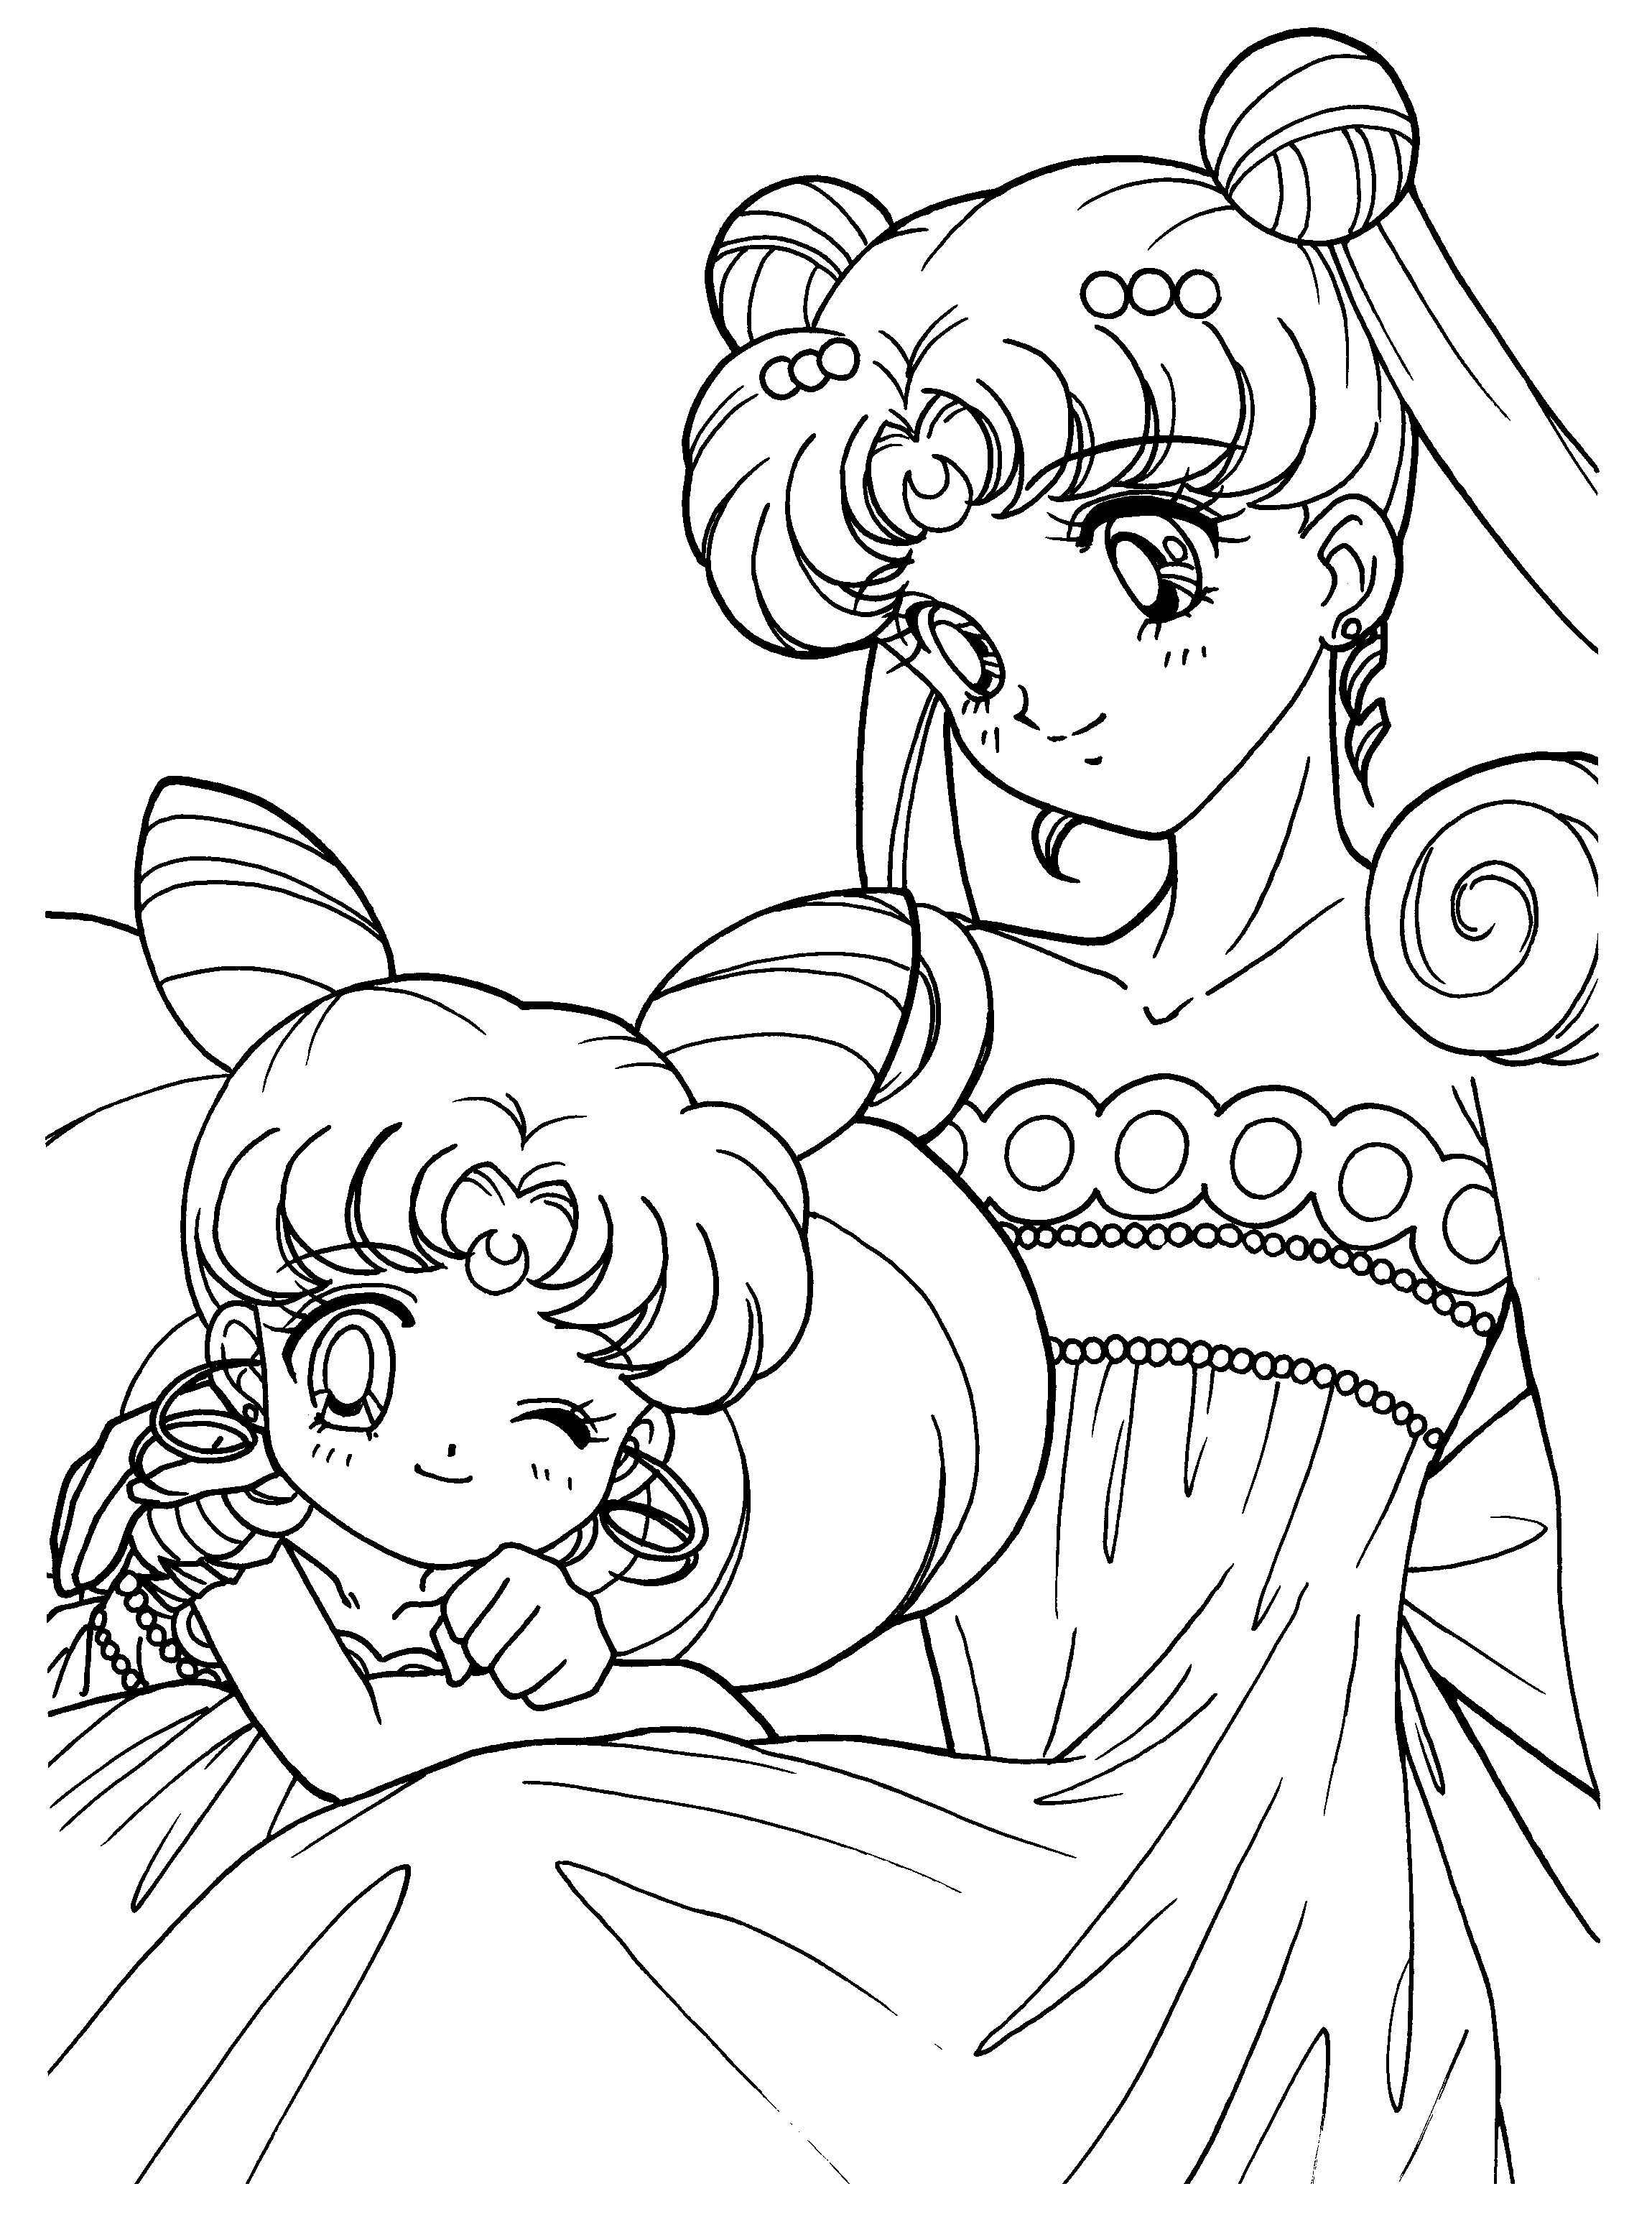 coloring pages for sailor moon - photo#3